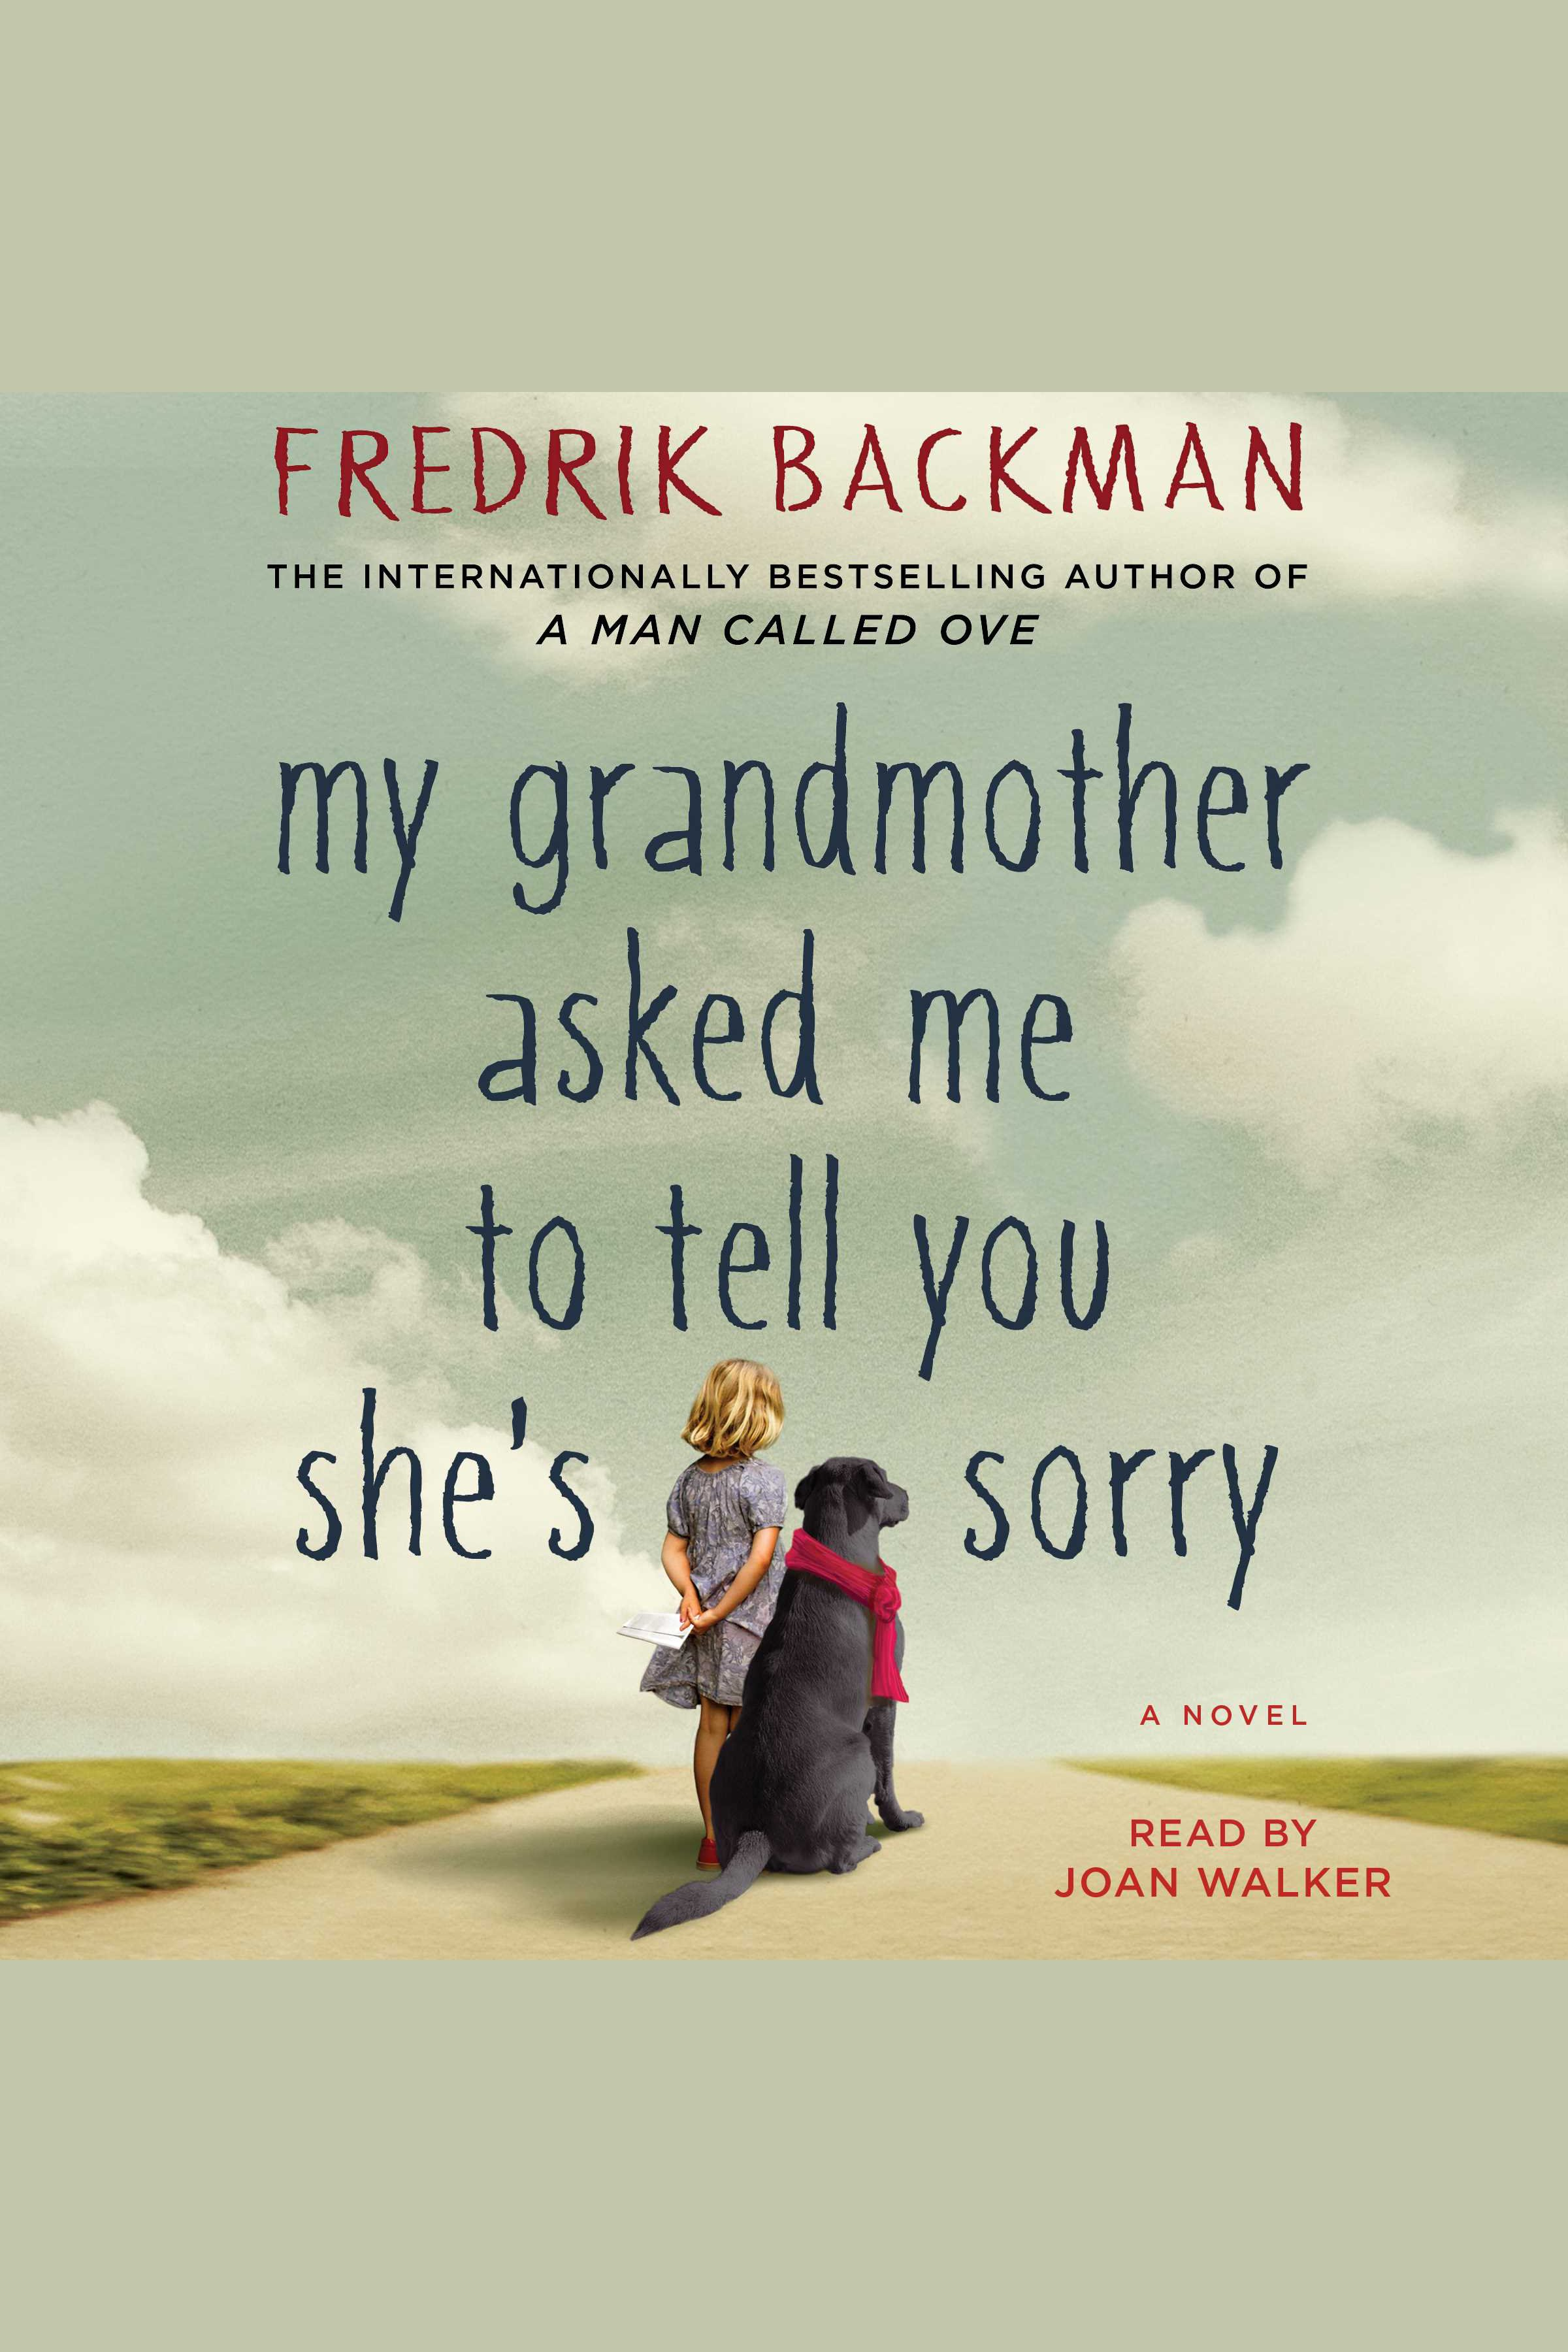 My grandmother asked me to tell you she's sorry [AudioEbook] : a novel